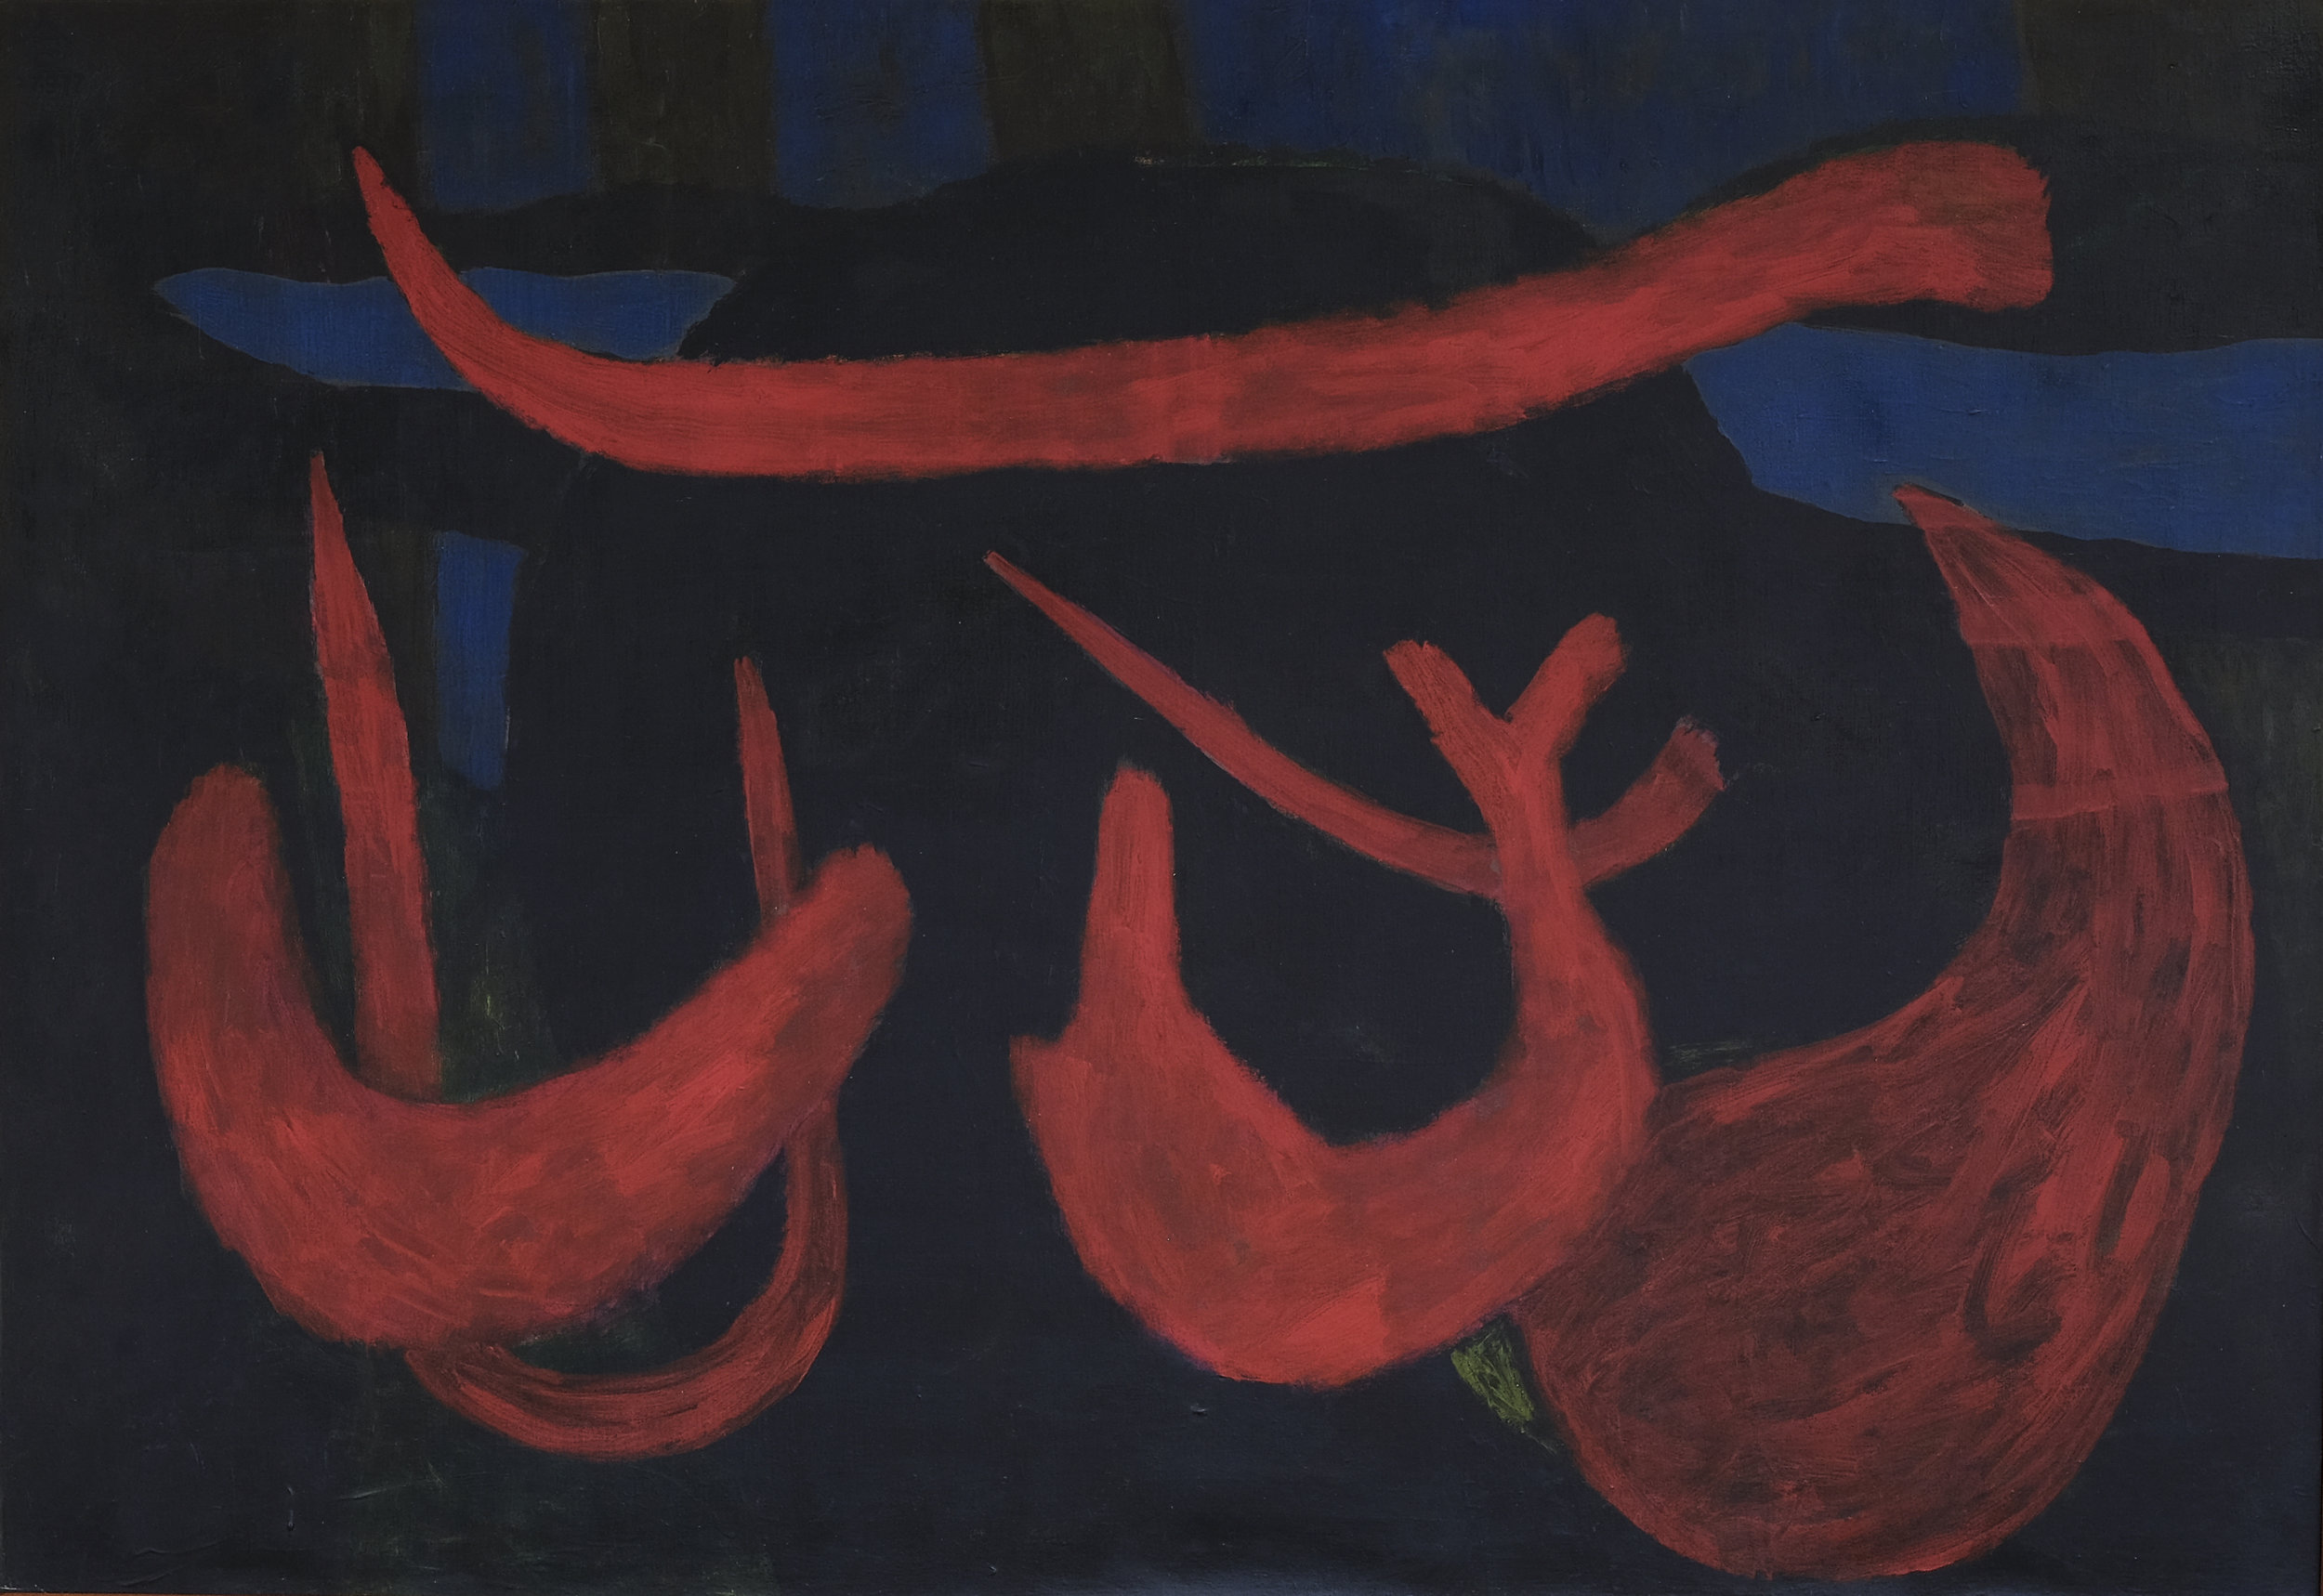 Nashar, Nyanyian Malam (Night Song), oil on canvas, 88 x 127 cm, 1977